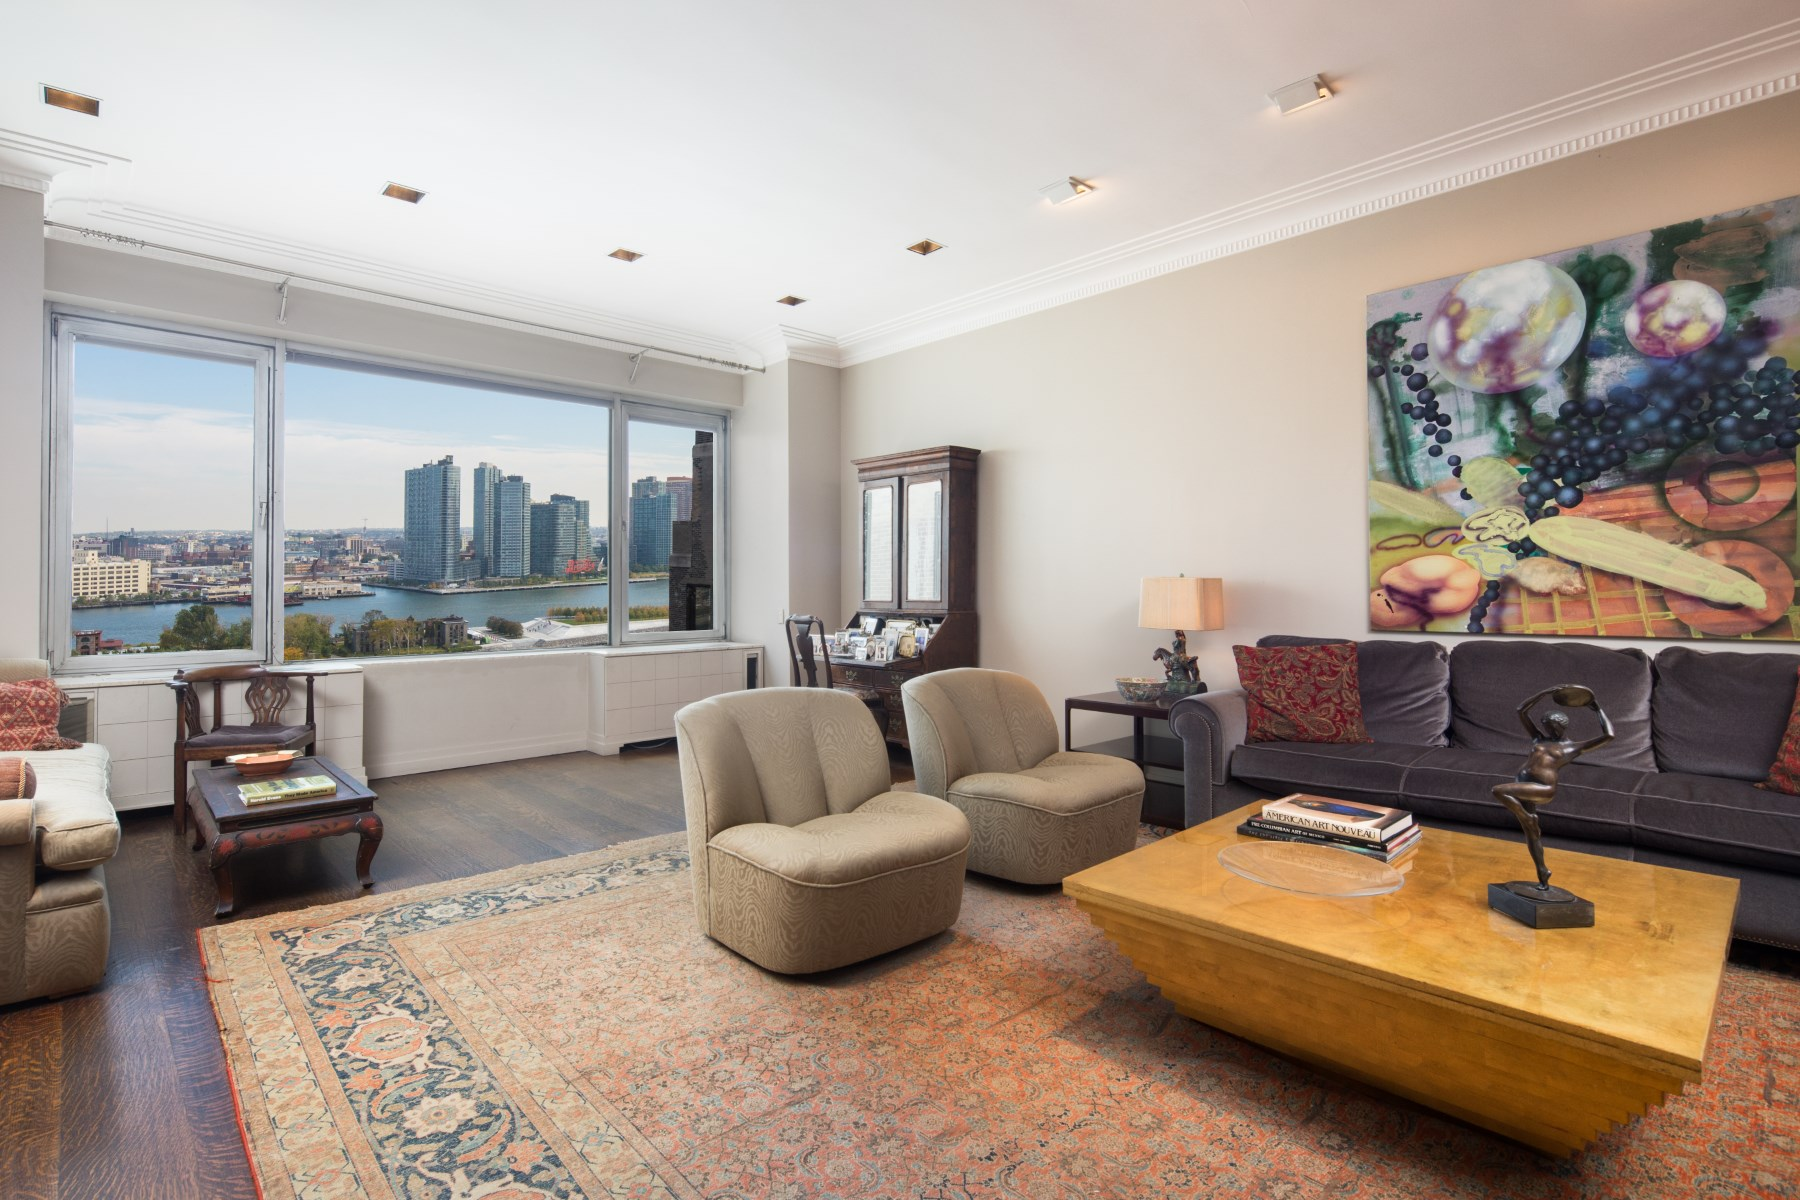 Copropriété pour l Vente à River House Penthouse with Terraces 435 East 52nd Street Apt 14/15/16D Midtown East, New York, New York, 10023 États-Unis